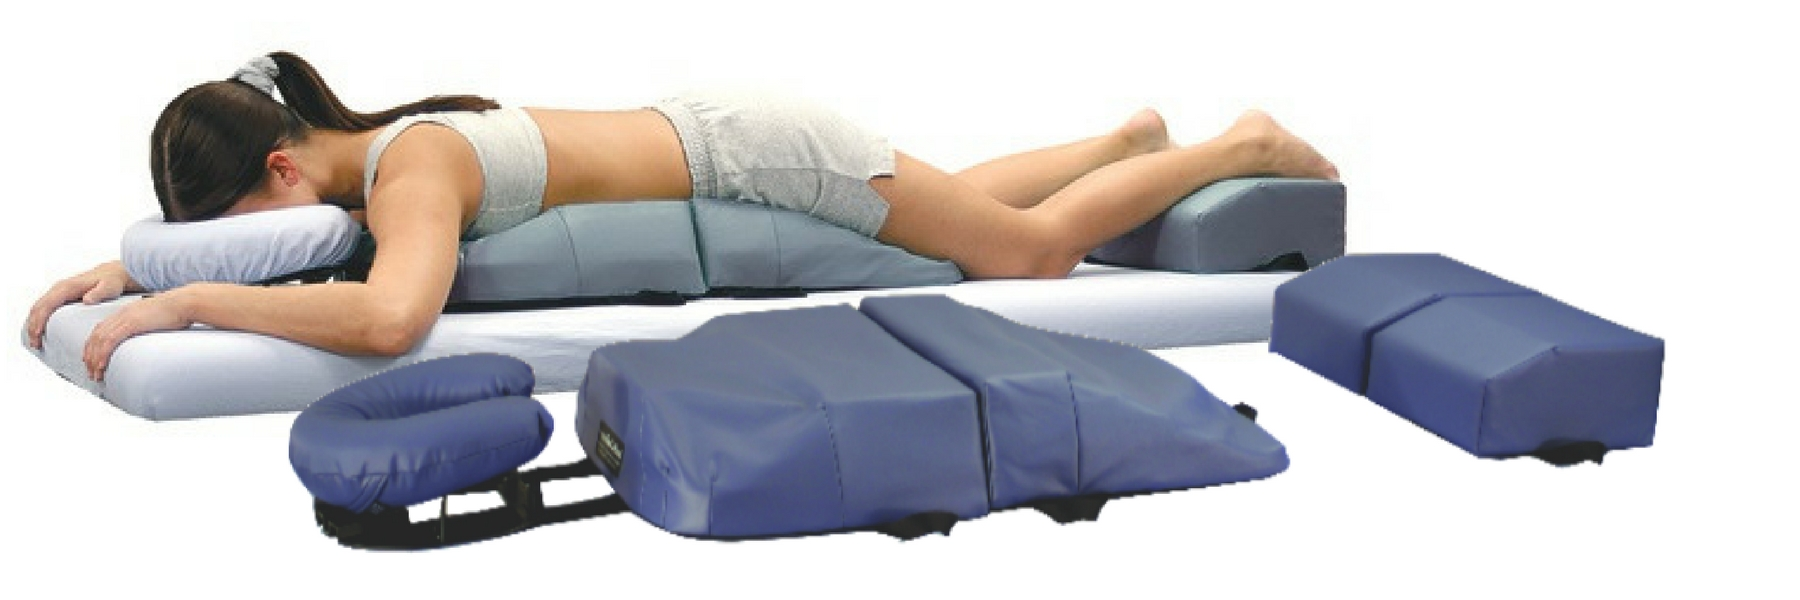 bodycushion2-with-human-model-and-without.jpg